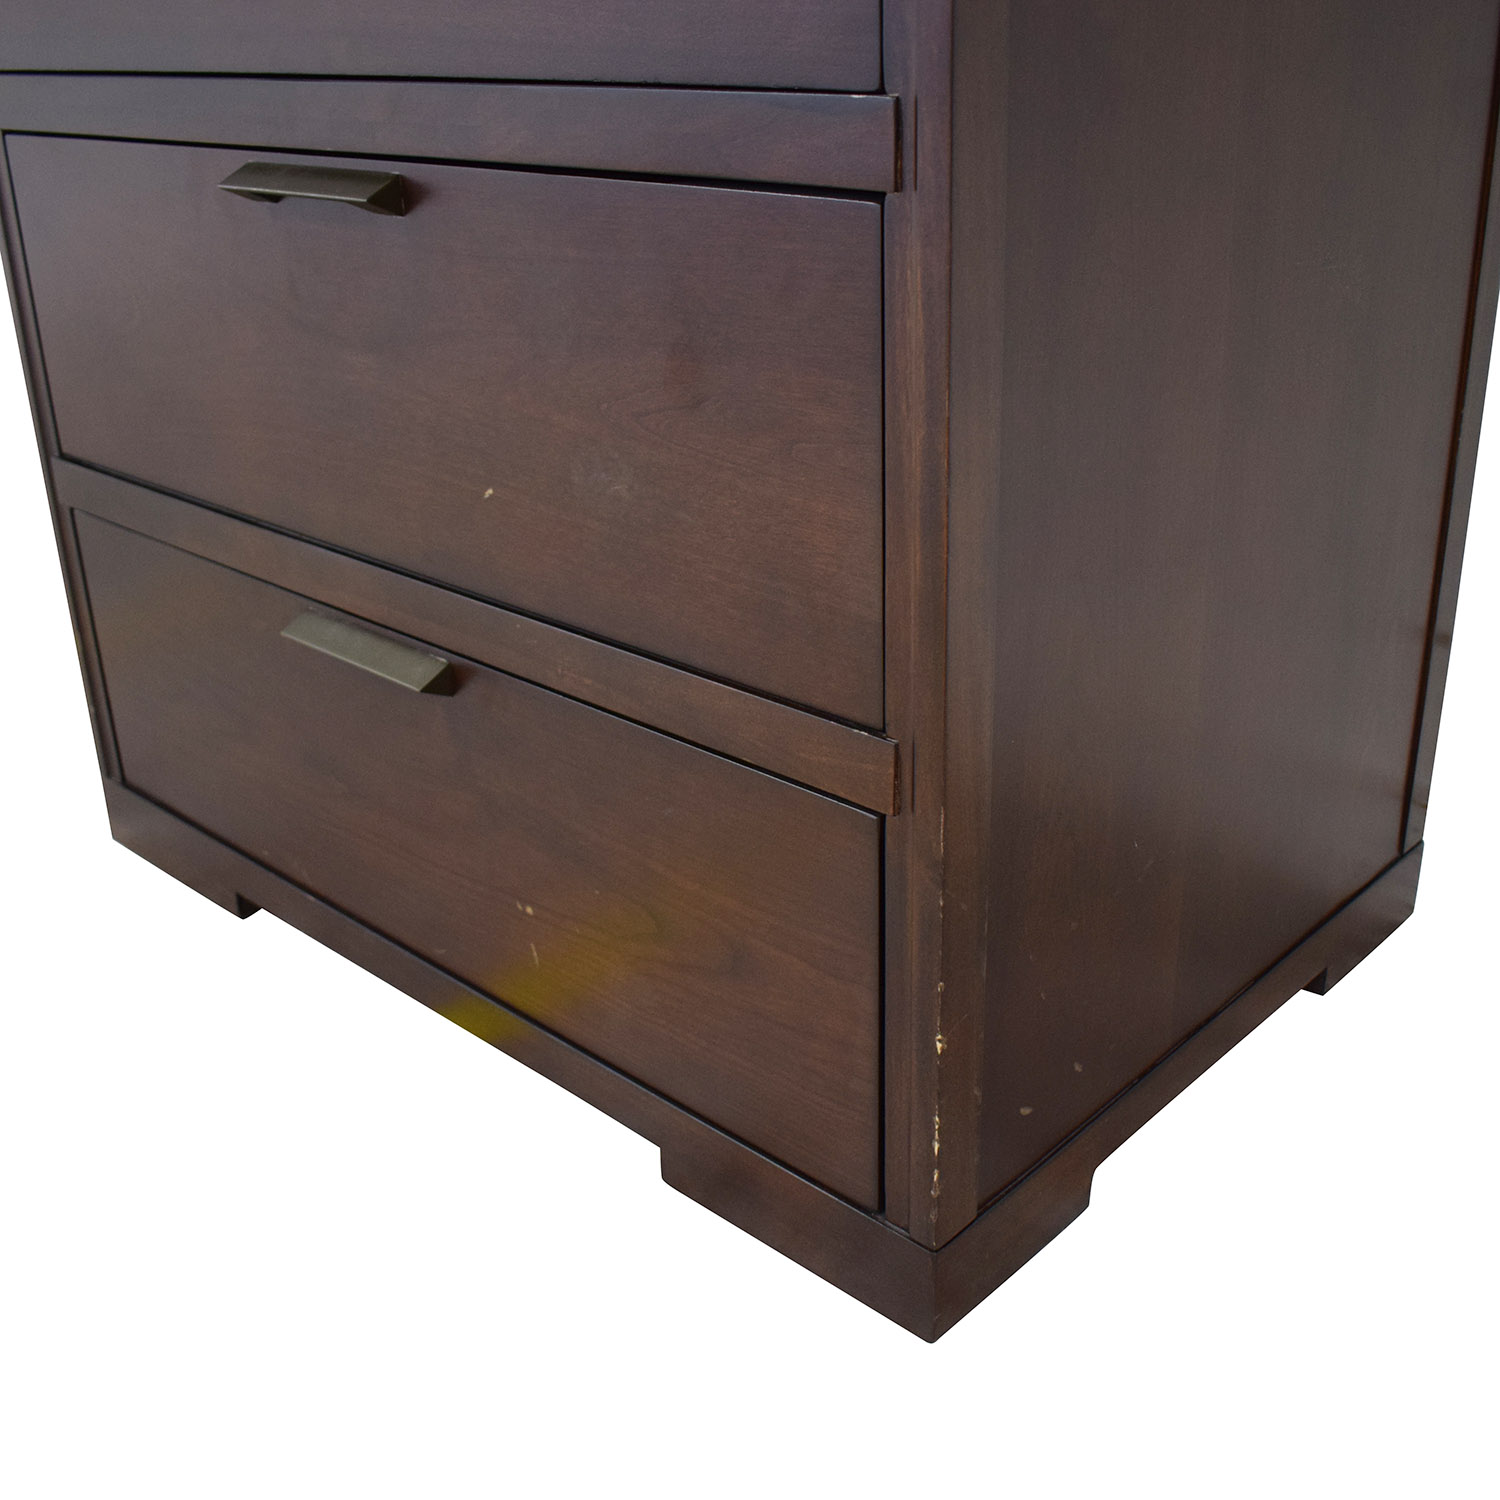 Crate & Barrel Crate & Barrel Five-Drawer Chest second hand